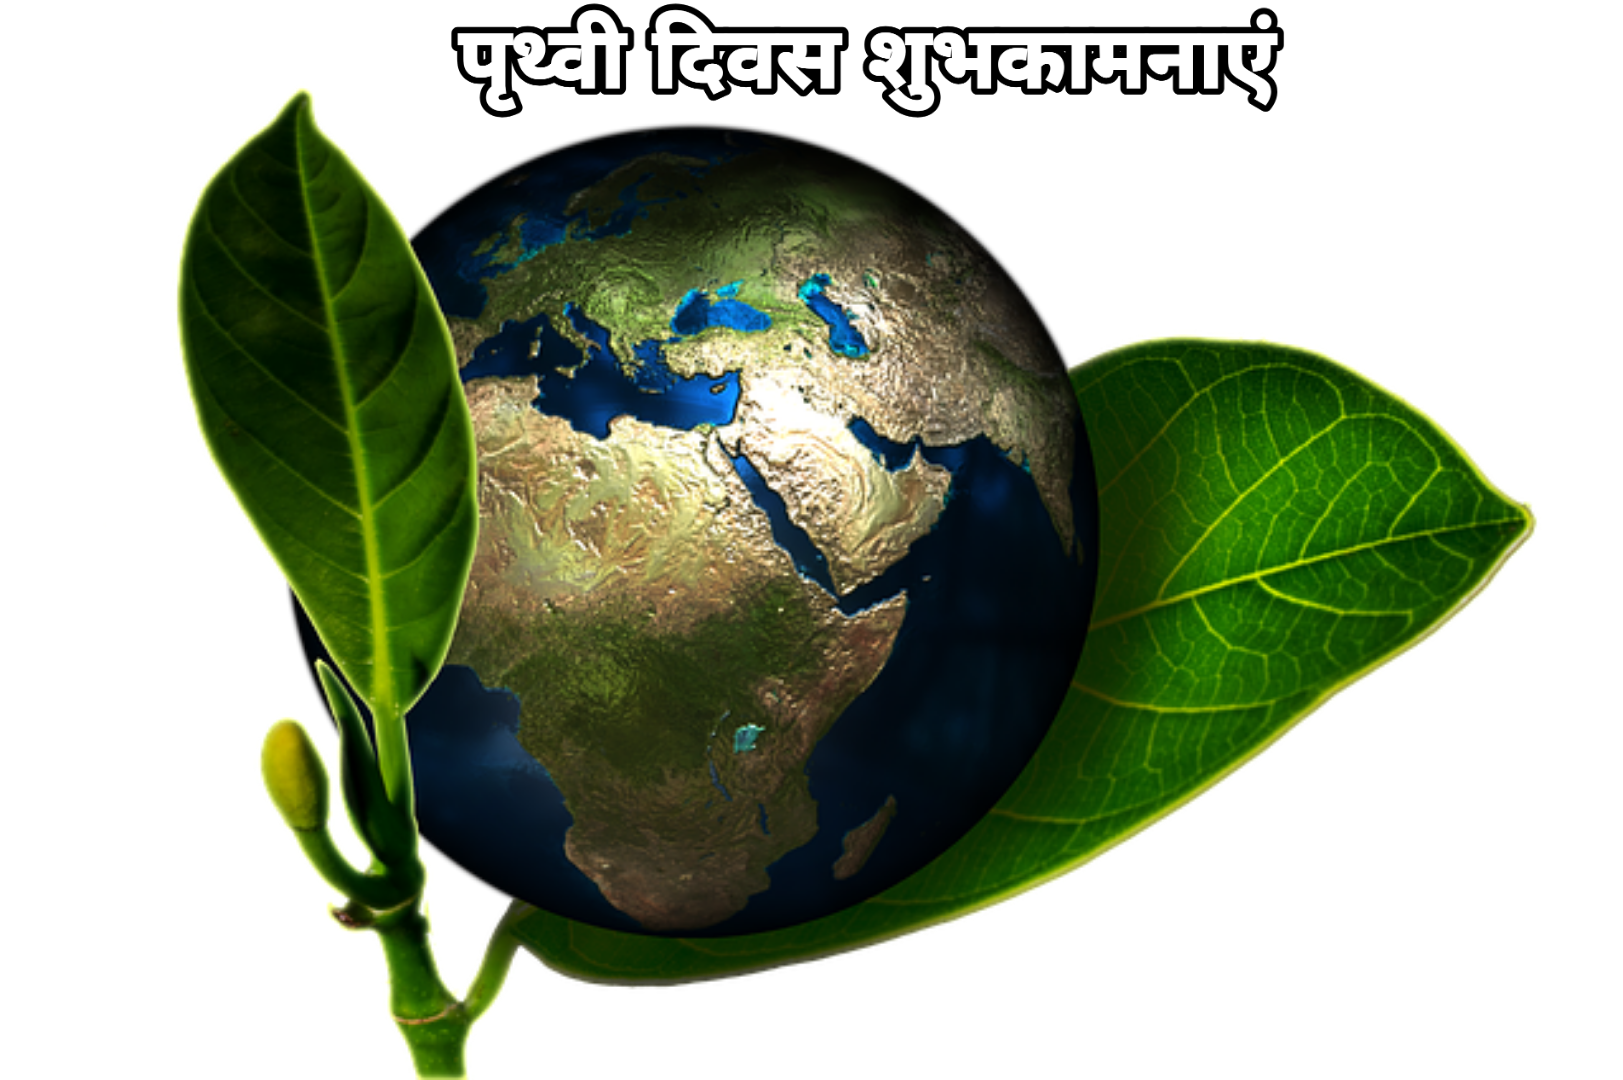 Photo of Earth day wishes shayari quotes messages 2020